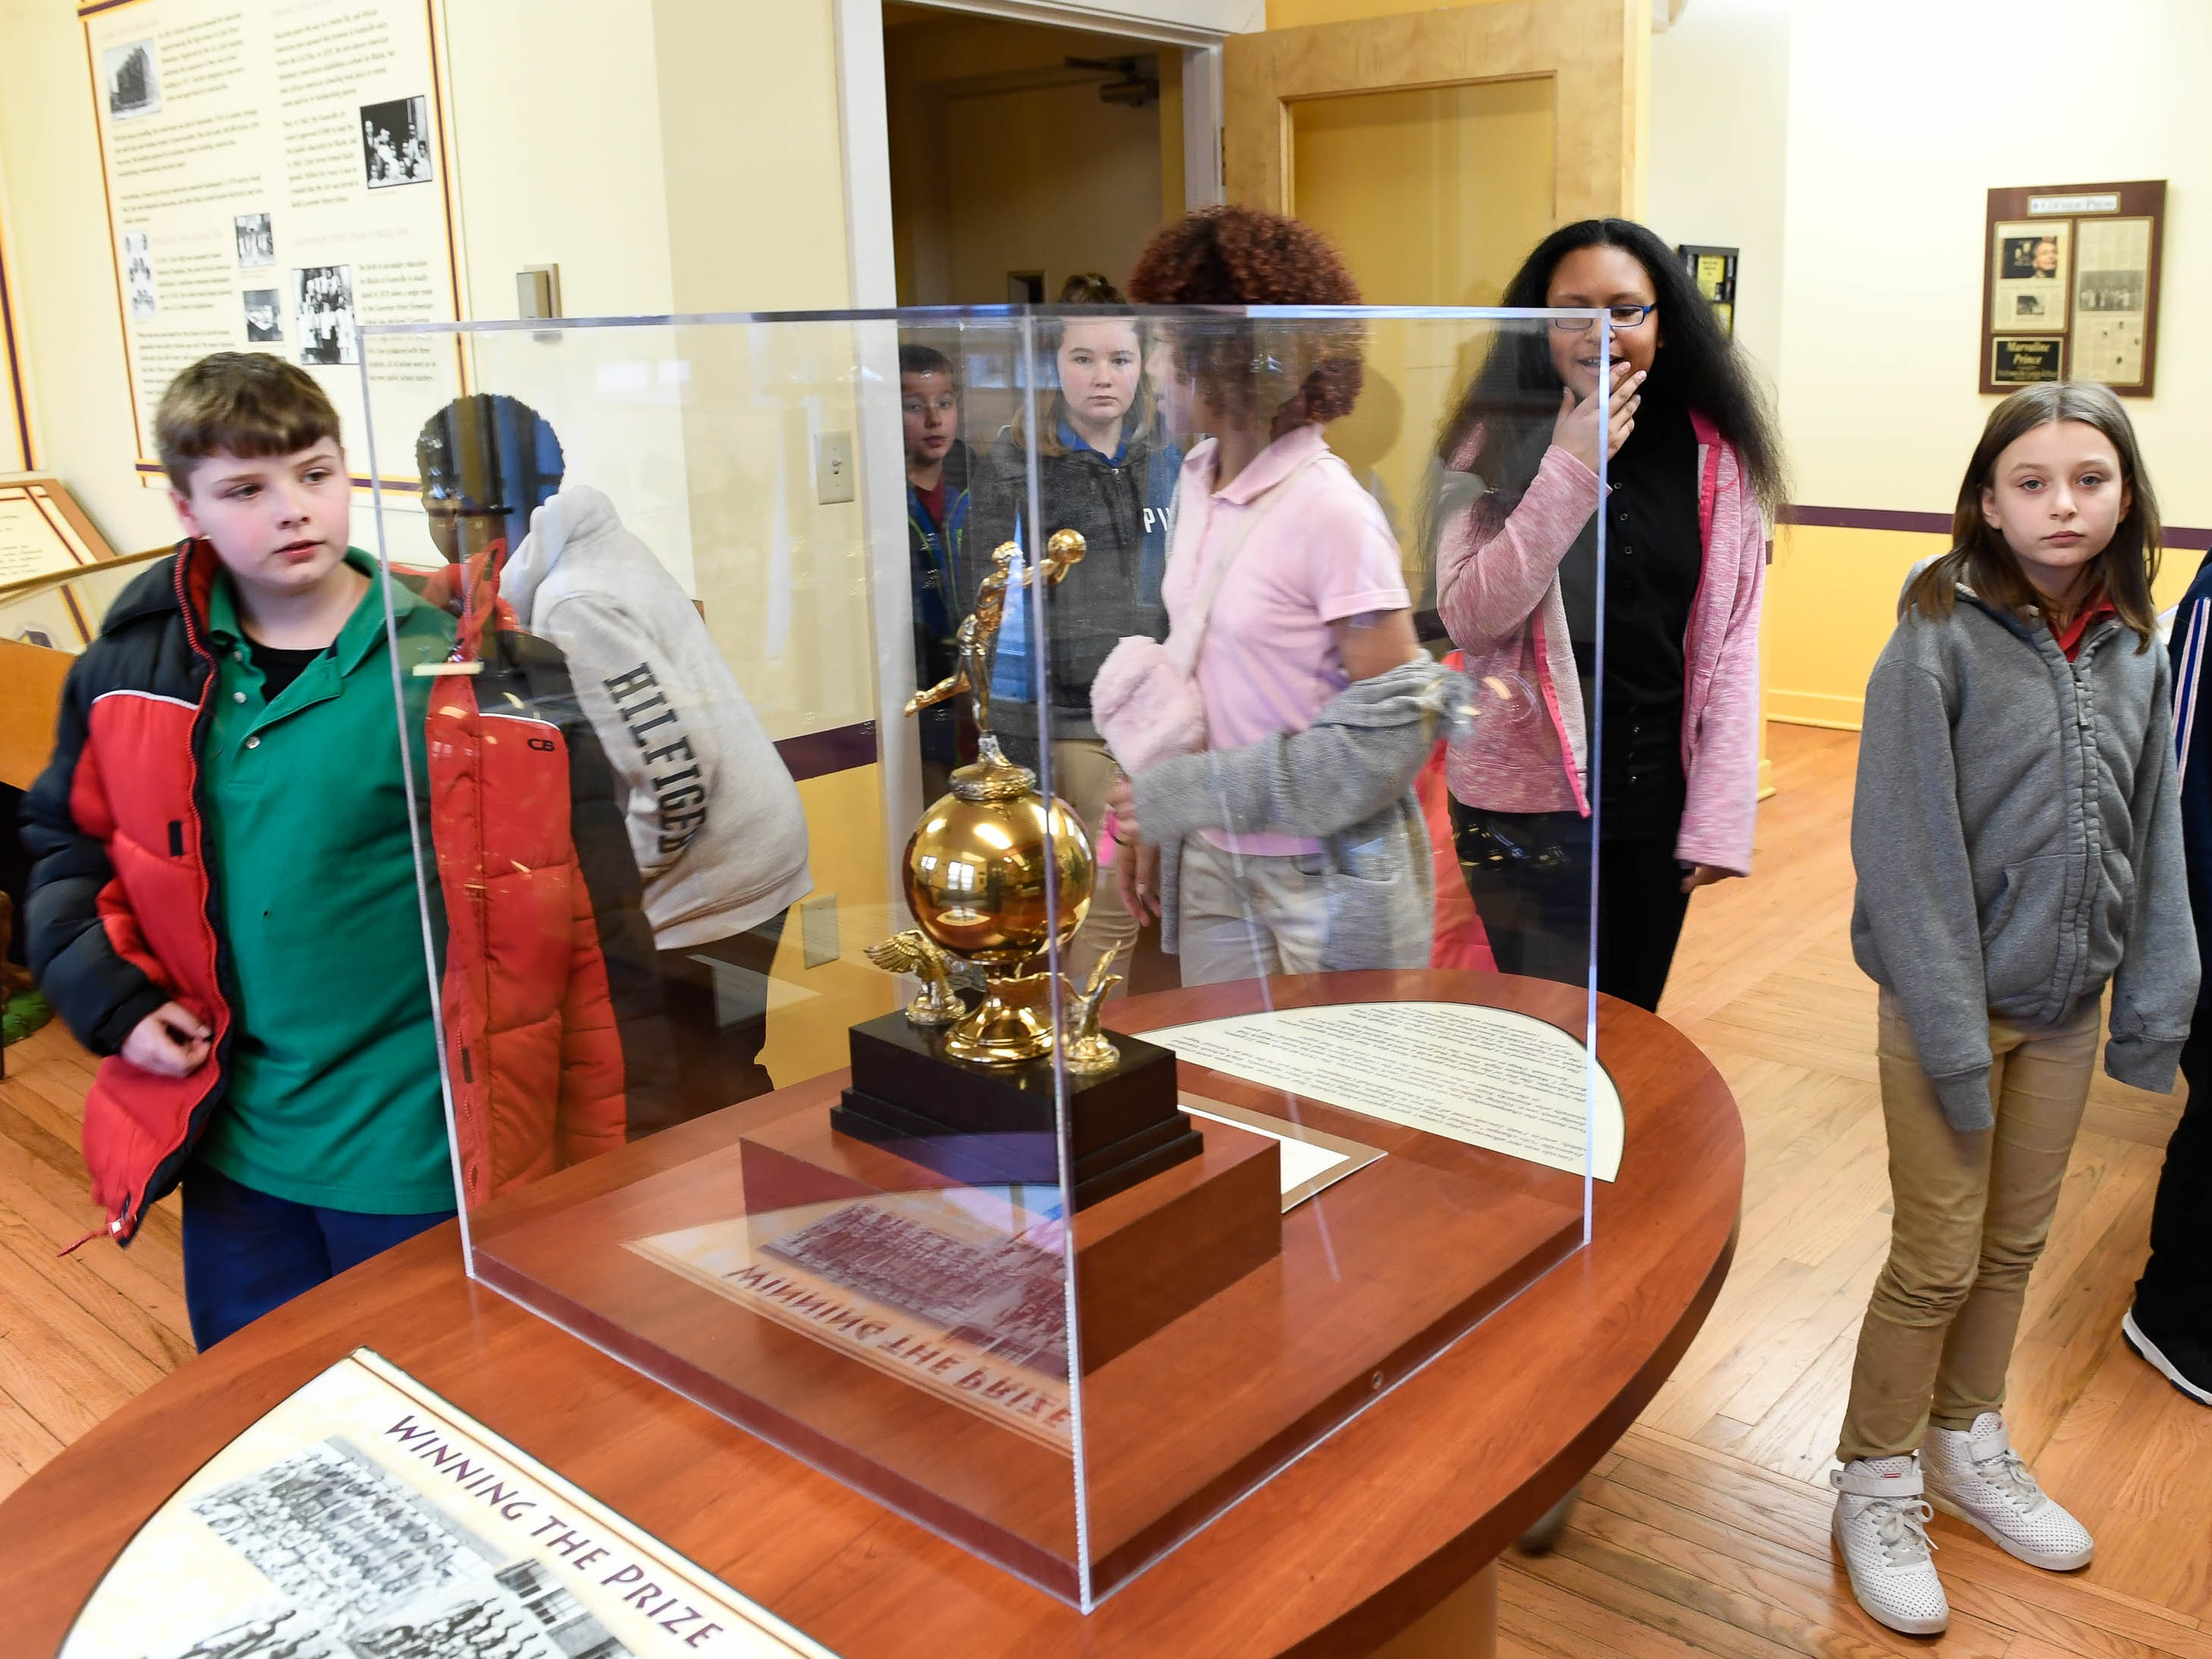 Dexter Elementary fifth graders on a tour of the Evansville African American Museum on Friday, February 15, 2019.